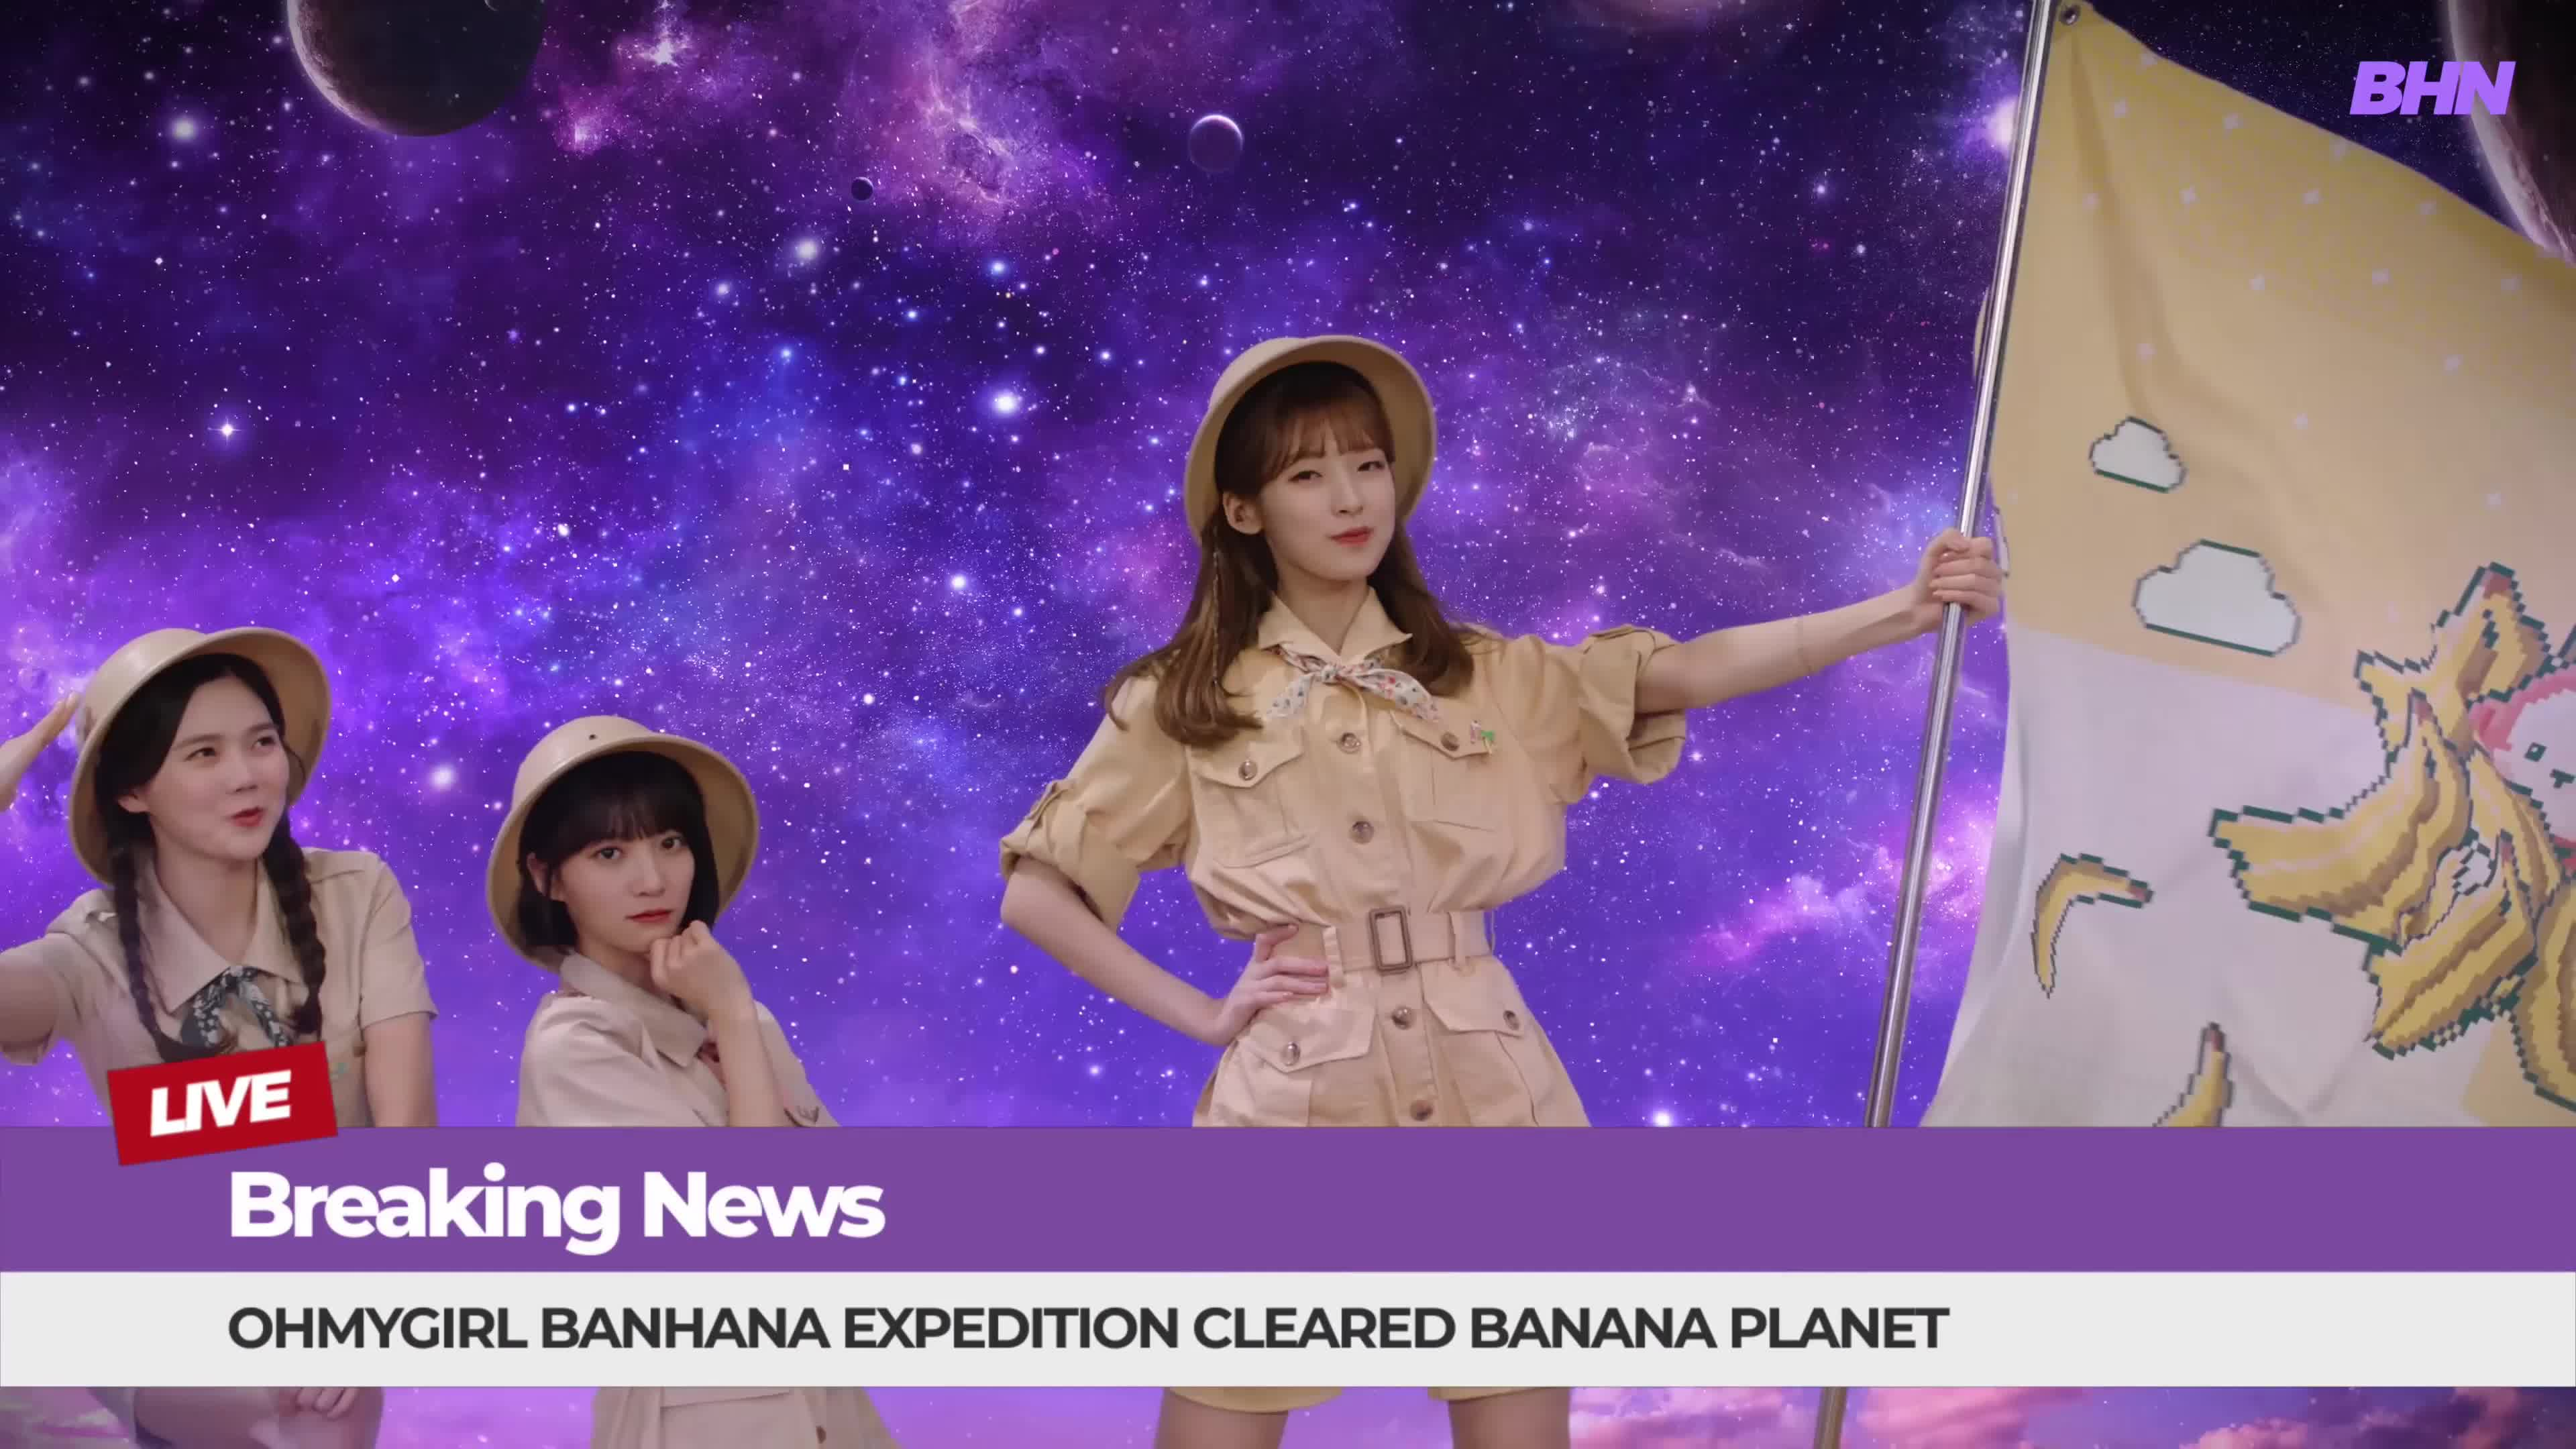 [MV] OH MY GIRL BANHANA(오마이걸 반하나) Banana allergy monkey 7 GIFs